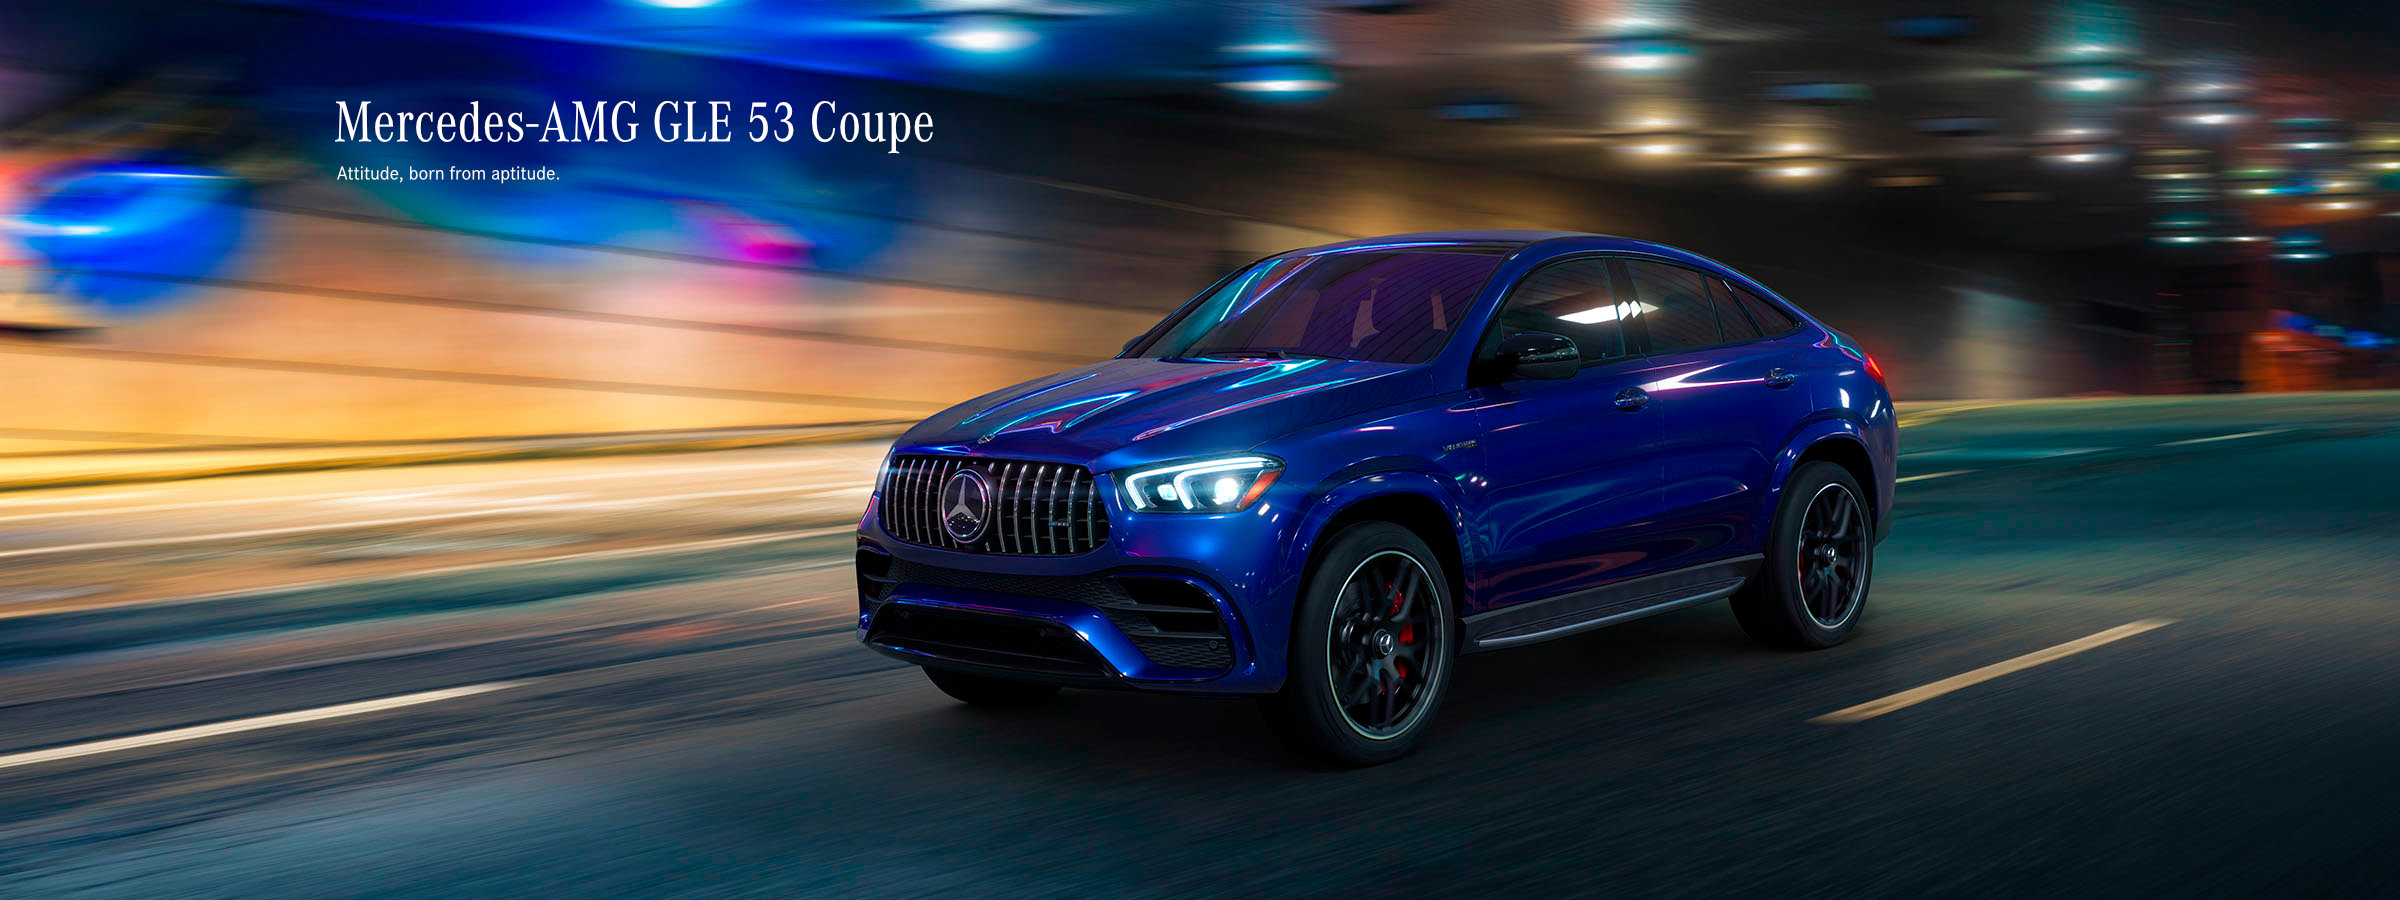 Save on a new 2021 Mercedes-AMG GLE Coupes at Mercedes-Benz of Temecula in Temecula, CA